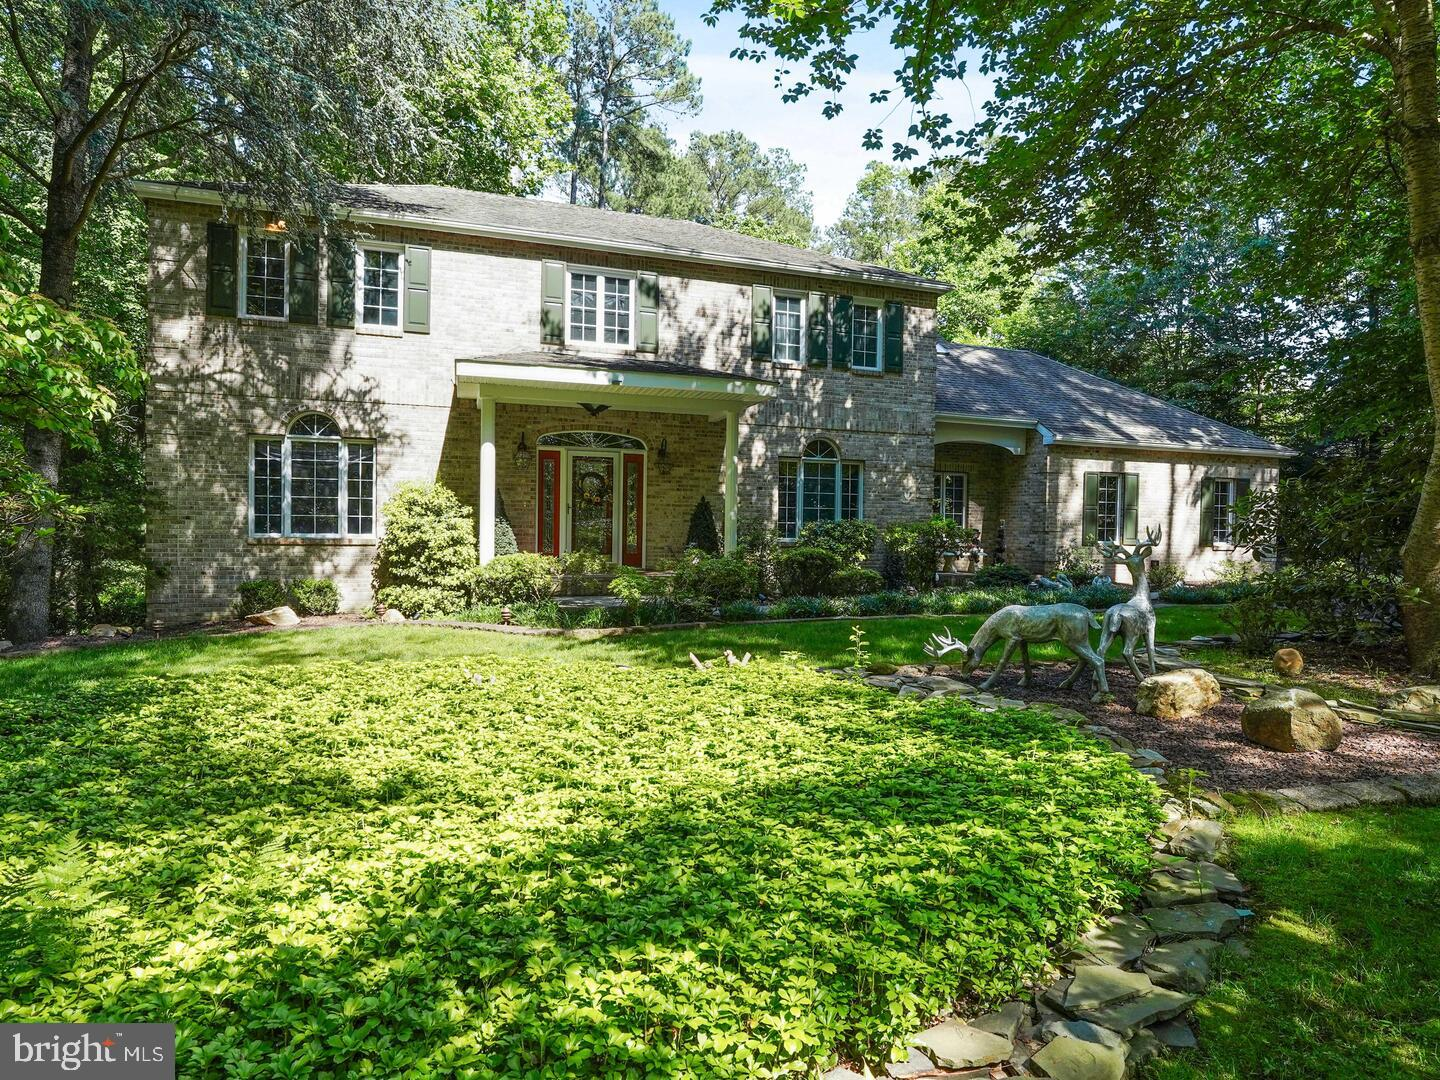 """A Rare opportunity to find a  1.6+ Acre Home site that backs to a Stream and Protected Woodlands,  in a small enclave of 21 Custom Homes, just off Route # 896 and North West of the U of D.  This Custom built home features 5 Bedrooms, 3.1 Baths with  over 5000 Sq. Ft. of Living space on three levels of living.  The Original Owner has lovingly maintained and upgraded this Home, with an endless list of  Custom features that are apparent as you pull into this  lovely mini-Estate. As you enter the home you will immediately be impressed with the Level of Care and Custom features that you are treated to, as you walk through the Home, The entry Foyer is highlighted  with a marble tile floor,  Chair and Crown molding and is flanked by the Formal areas of the home. The Foyer, Living & Dining areas room immediately set the tone for this Lovely Home with  Custom Lighting  upgrades, extensive Millwork,  gorgeous Tile and Hardwood floors, that lead you into the more casual areas such as the Grand Family room that features a floor to ceiling Brick fireplace with Granite Hearth, two eyeball  and three recessed  lights also a vaulted ceiling with two skylights, and an oversized slider that leads to a 30' x 13' Glass enclosed Four Season Room, with cathedral ceiling and two skylights. The Kitchen features 42""""  Raised Panel all wood Cabinets, w/ Crown molding, loads of base cabinet drawers, Wine & Cubby storage, Corian  Counter top, Tile backsplash and an 11'  Center Island w/ a Breakfast Bar & Granite counter top, double door Pantry, 8 recessed lights, all Upgraded appliances are included, plus there is a 19' x 10' Breakfast room  with a Desk and Bar area, highlighted with a Vaulted ceiling and another set of sliders to the Florida Room. The first floor does feature a Guest bedroom, plus a step saving Tile floor Laundry with a Sink, Storage cabinets, Service door(Washer & Dryer included) The Upper floor hallway features Wainscoting & Hardwood floors that lead to the Primary Suite, wi"""